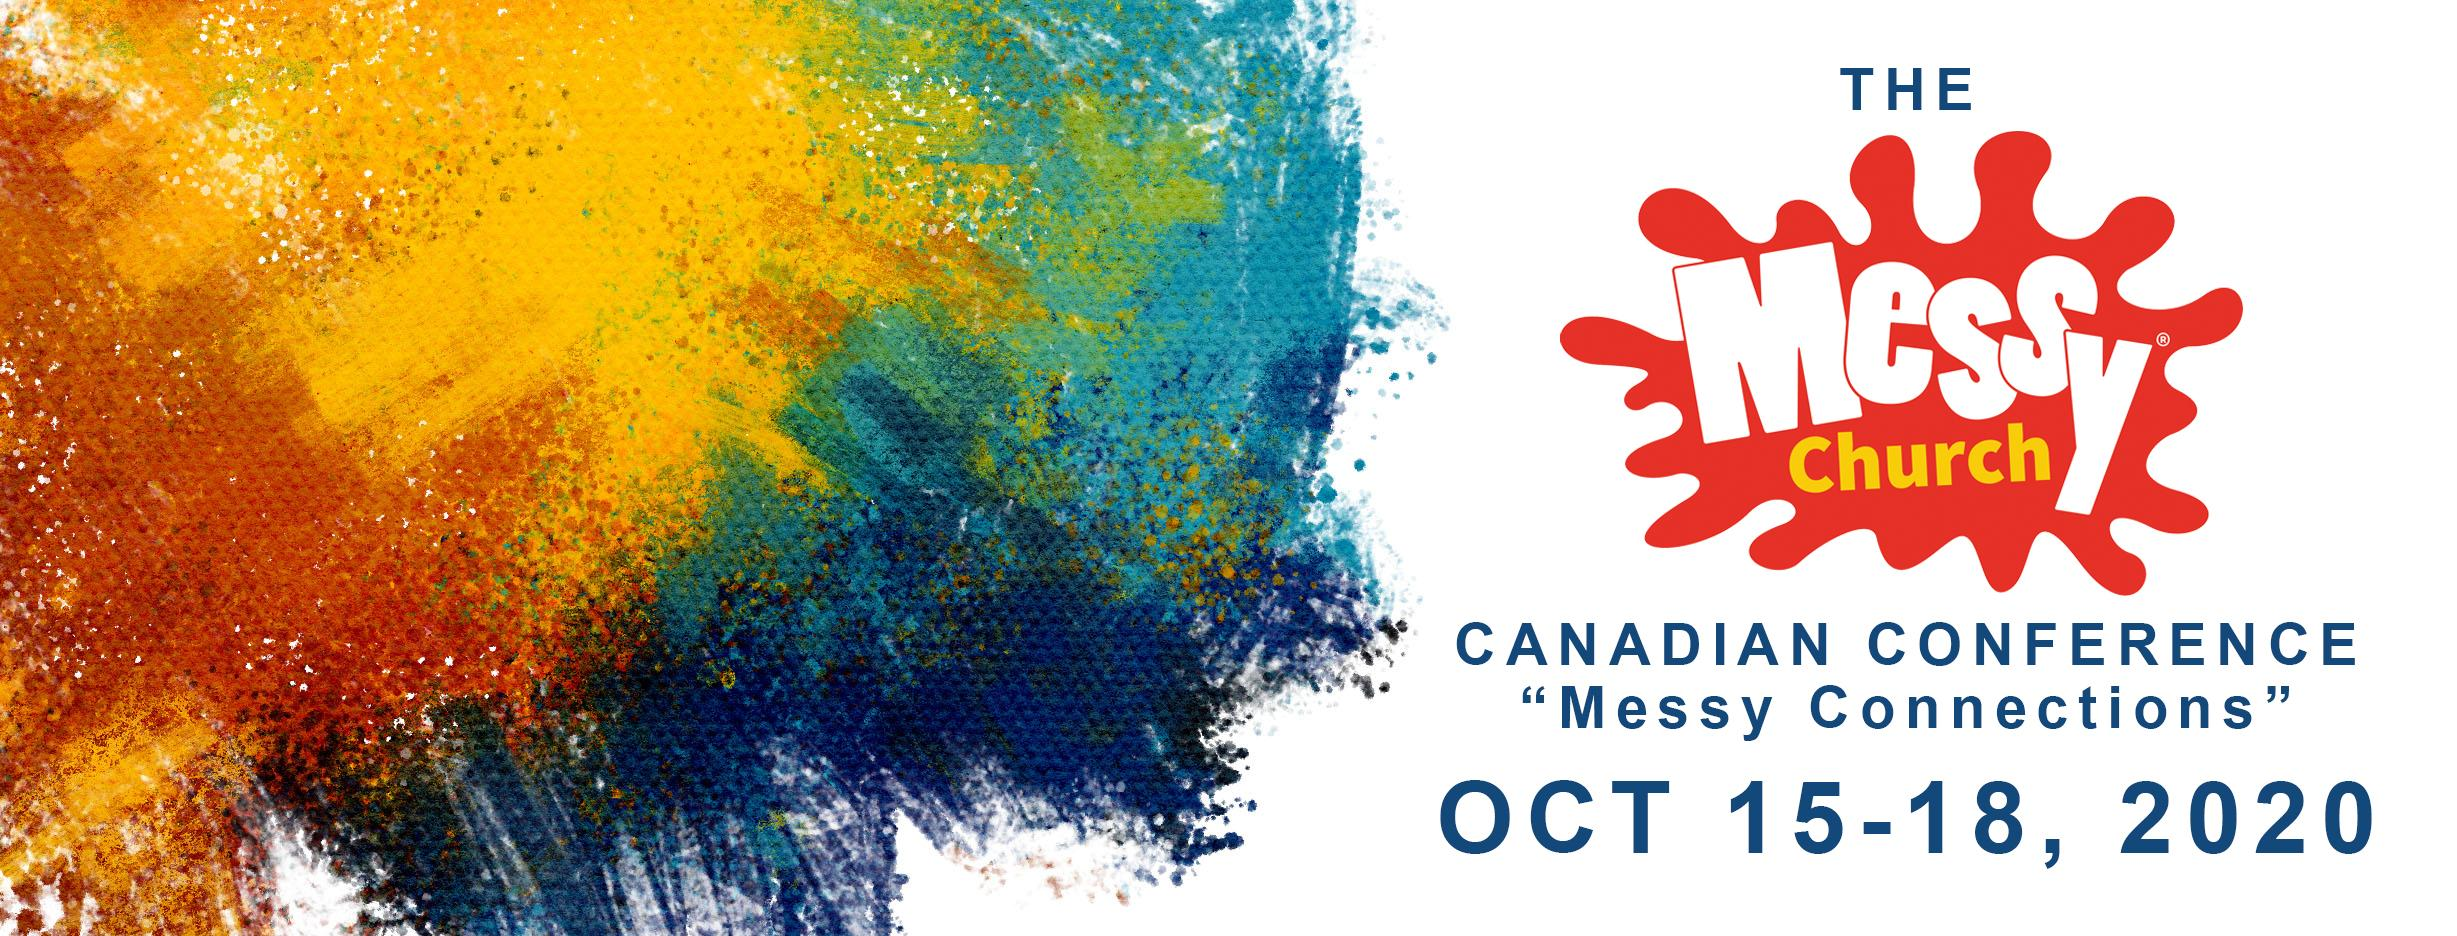 Messy Connections - The Canadian Messy Church Conference